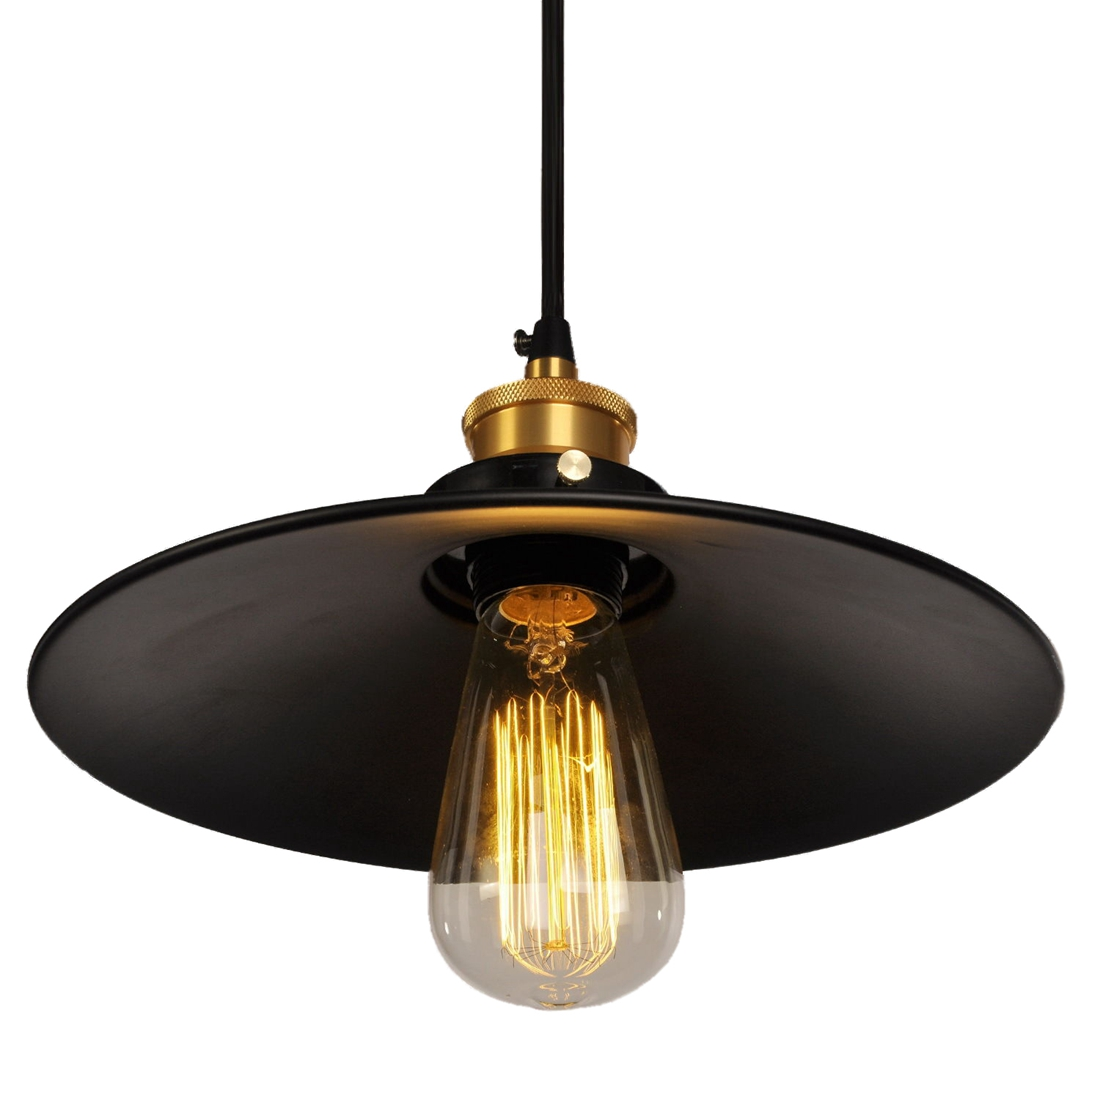 Garage Metal Ceiling Light Retro Chandelier Pendant ...